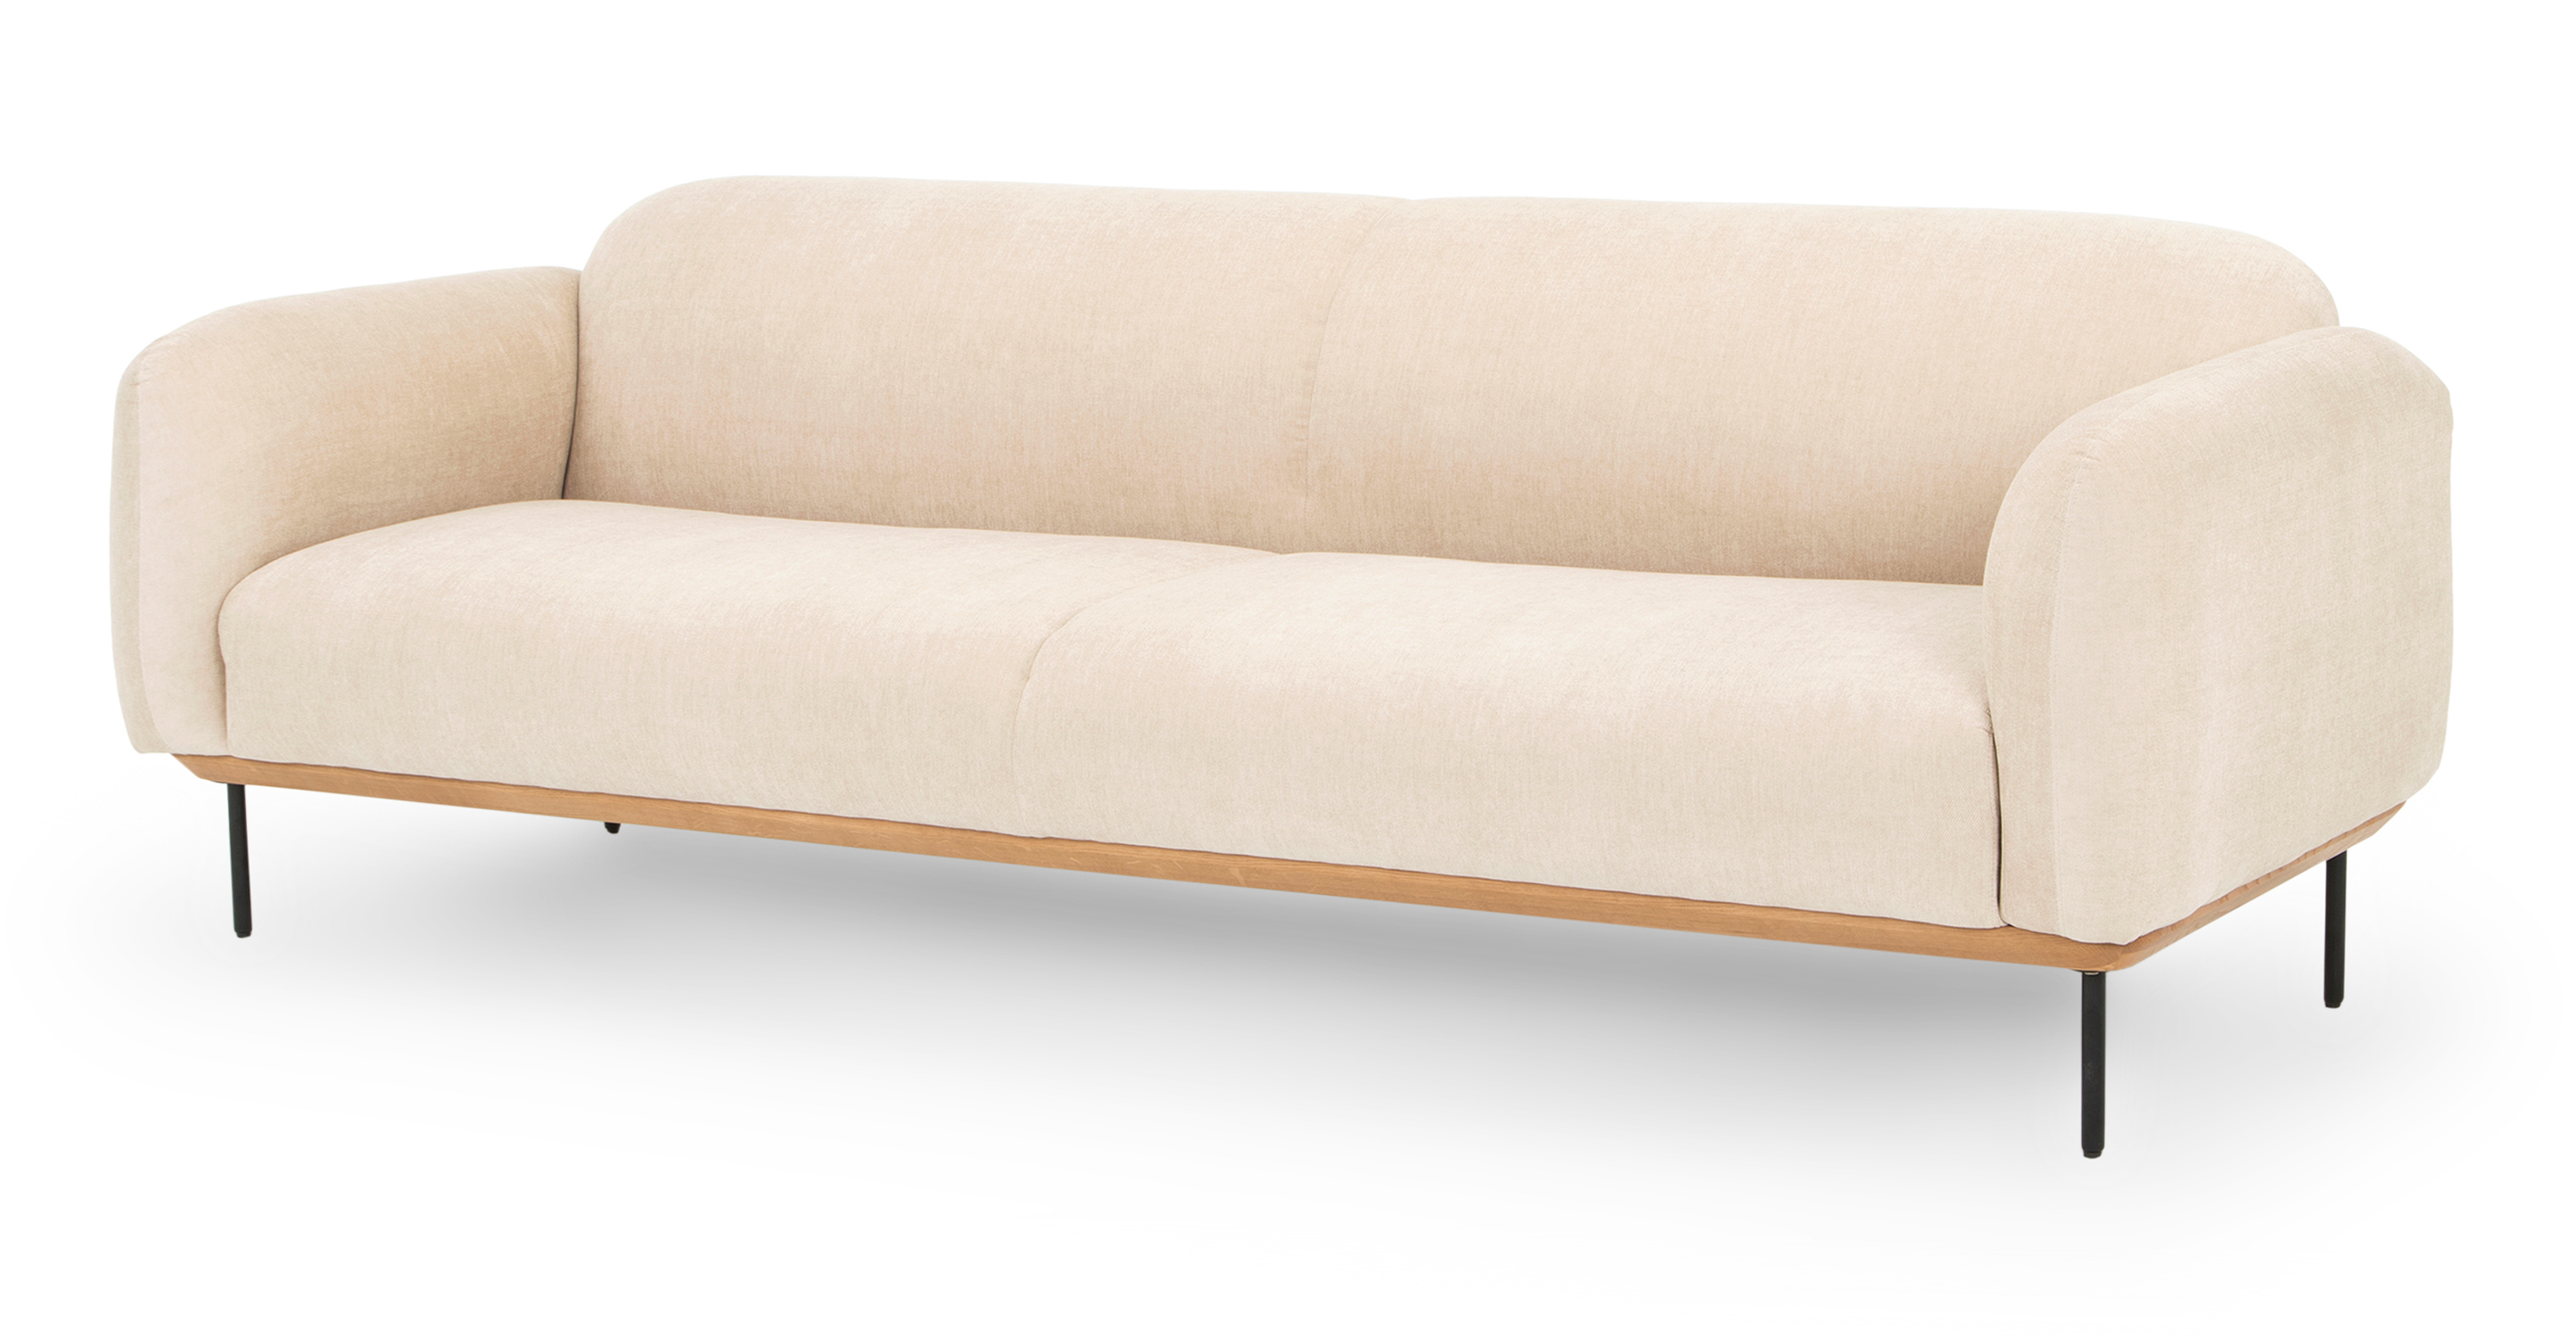 "Cloud 90"" Fabric Sofa, Macadamia"